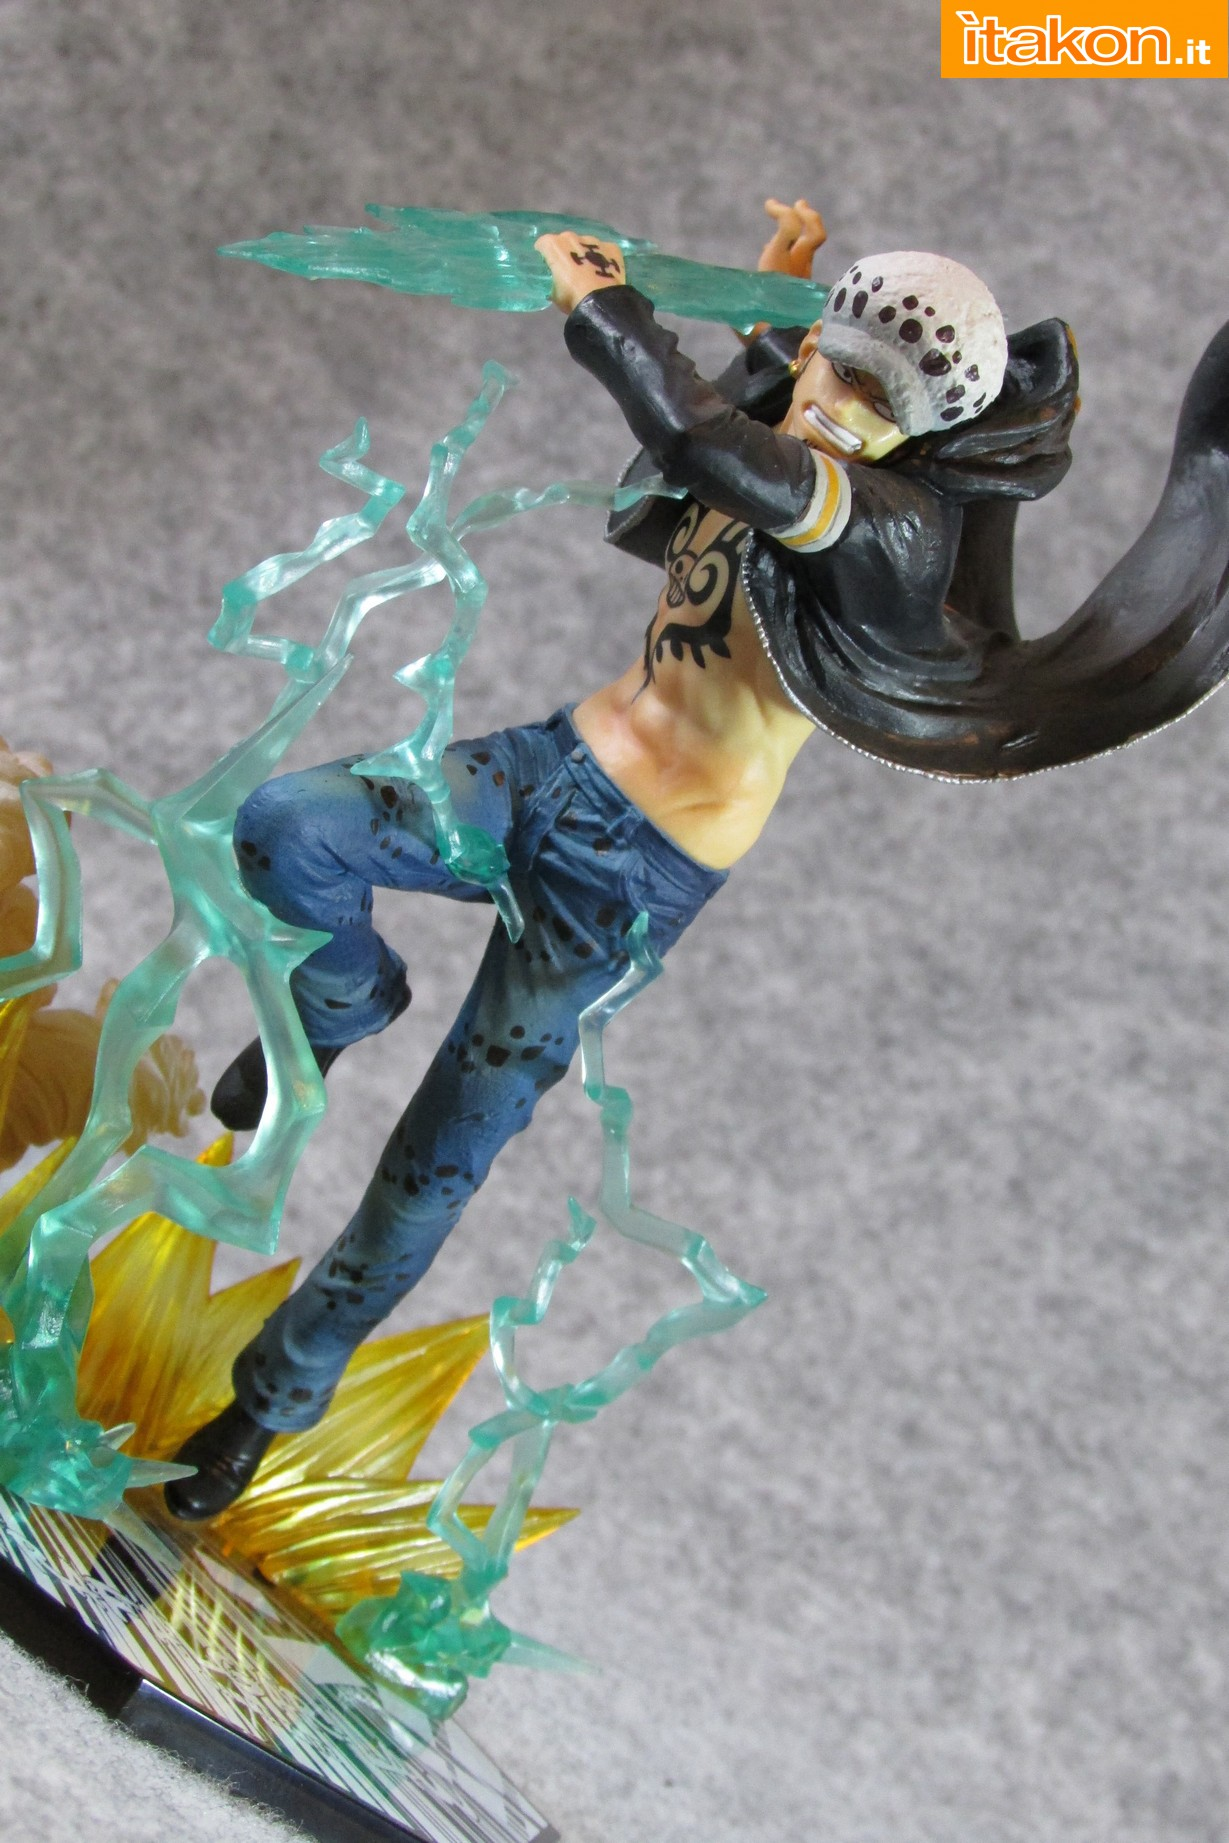 Link a One Piece Trafalgar Law Gamma Knife Figuarts ZERO Chou Gekisen Extra Battle Recensione Review Itakon.it 17